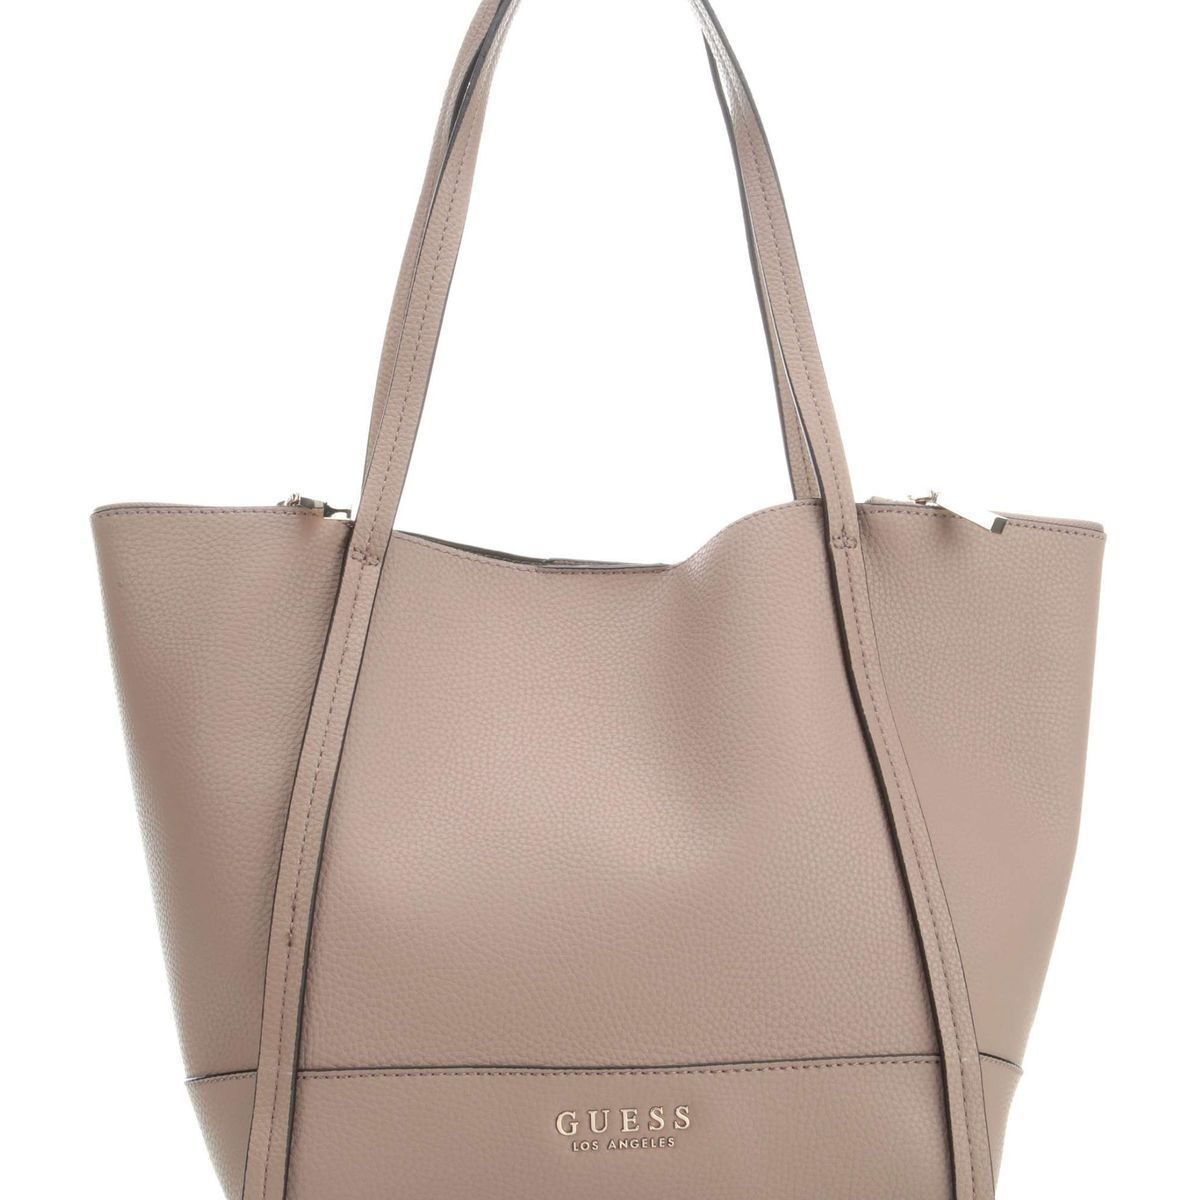 Guess femme heidi tote taupe1120001_2